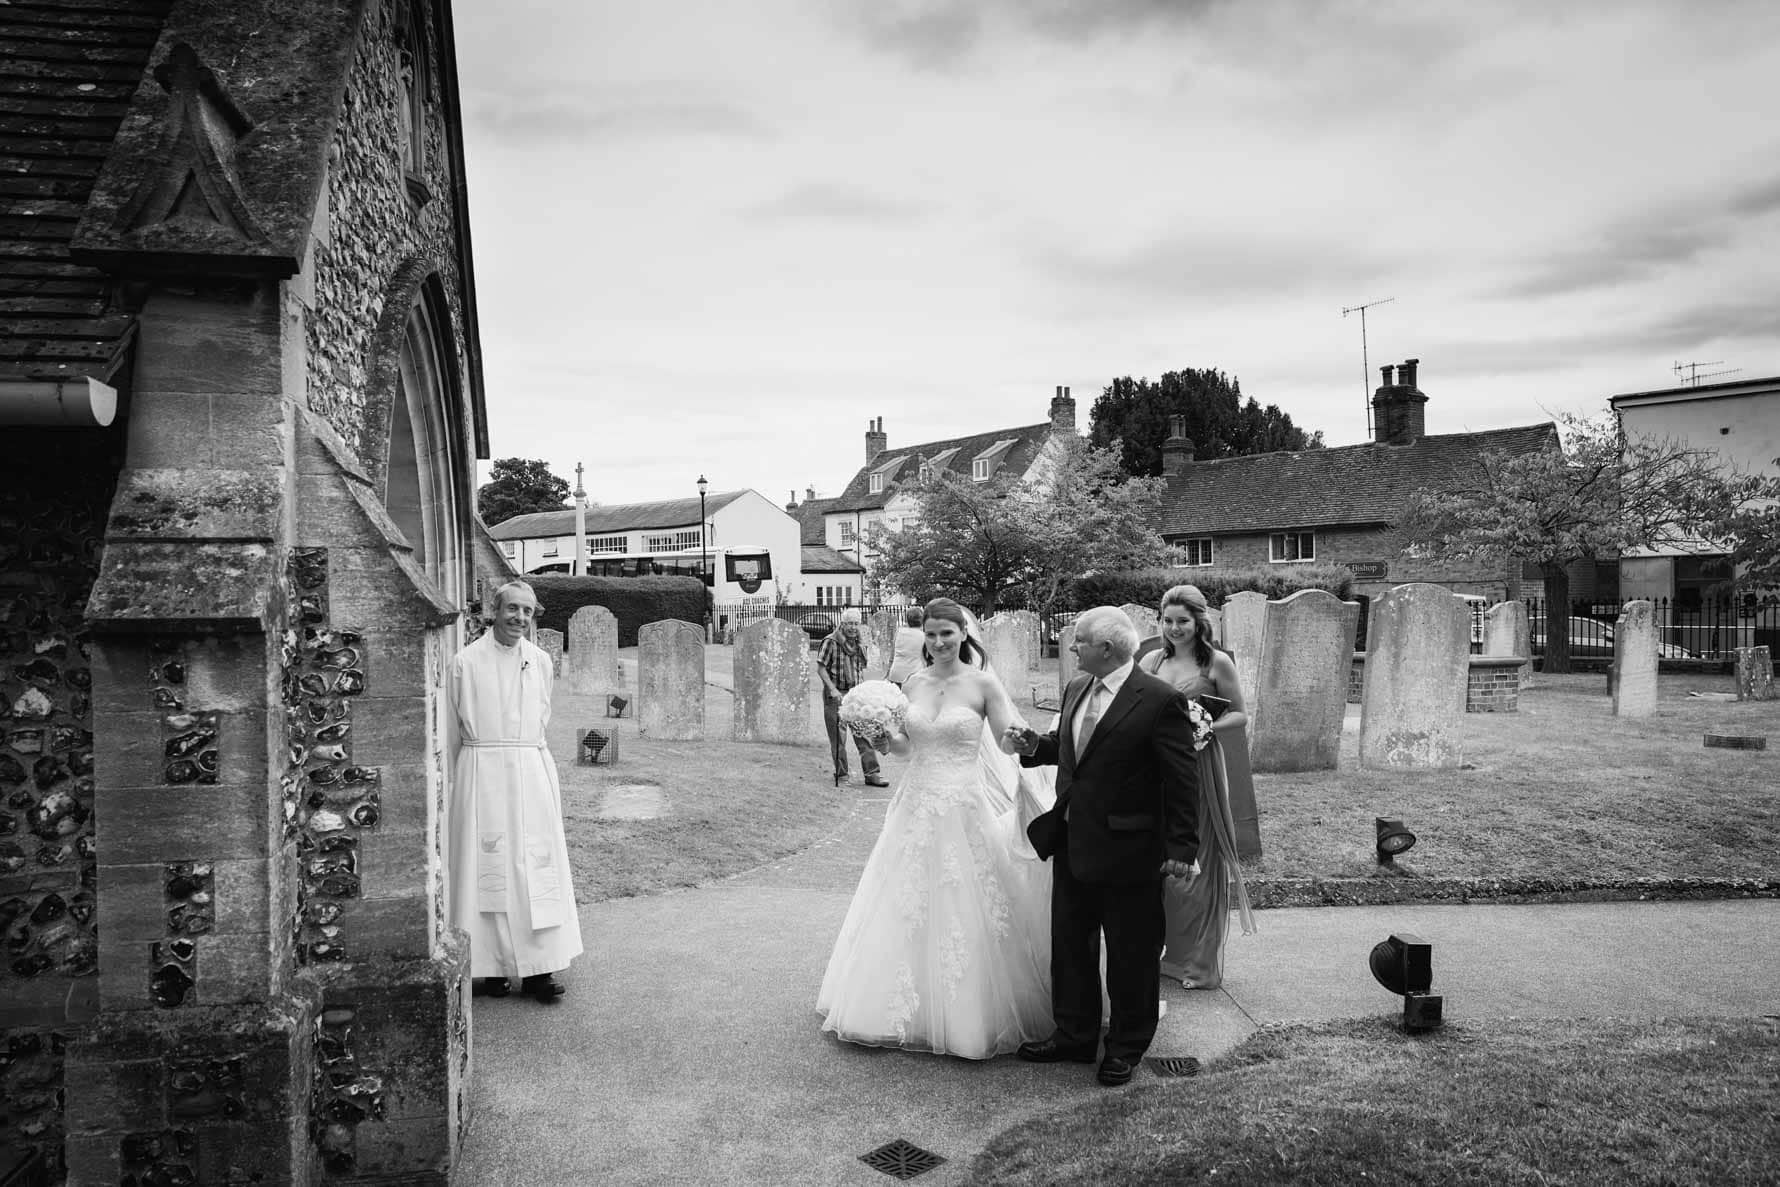 Vicar greets bridal party at St Mary's Church, Welwyn, Hertfordshire